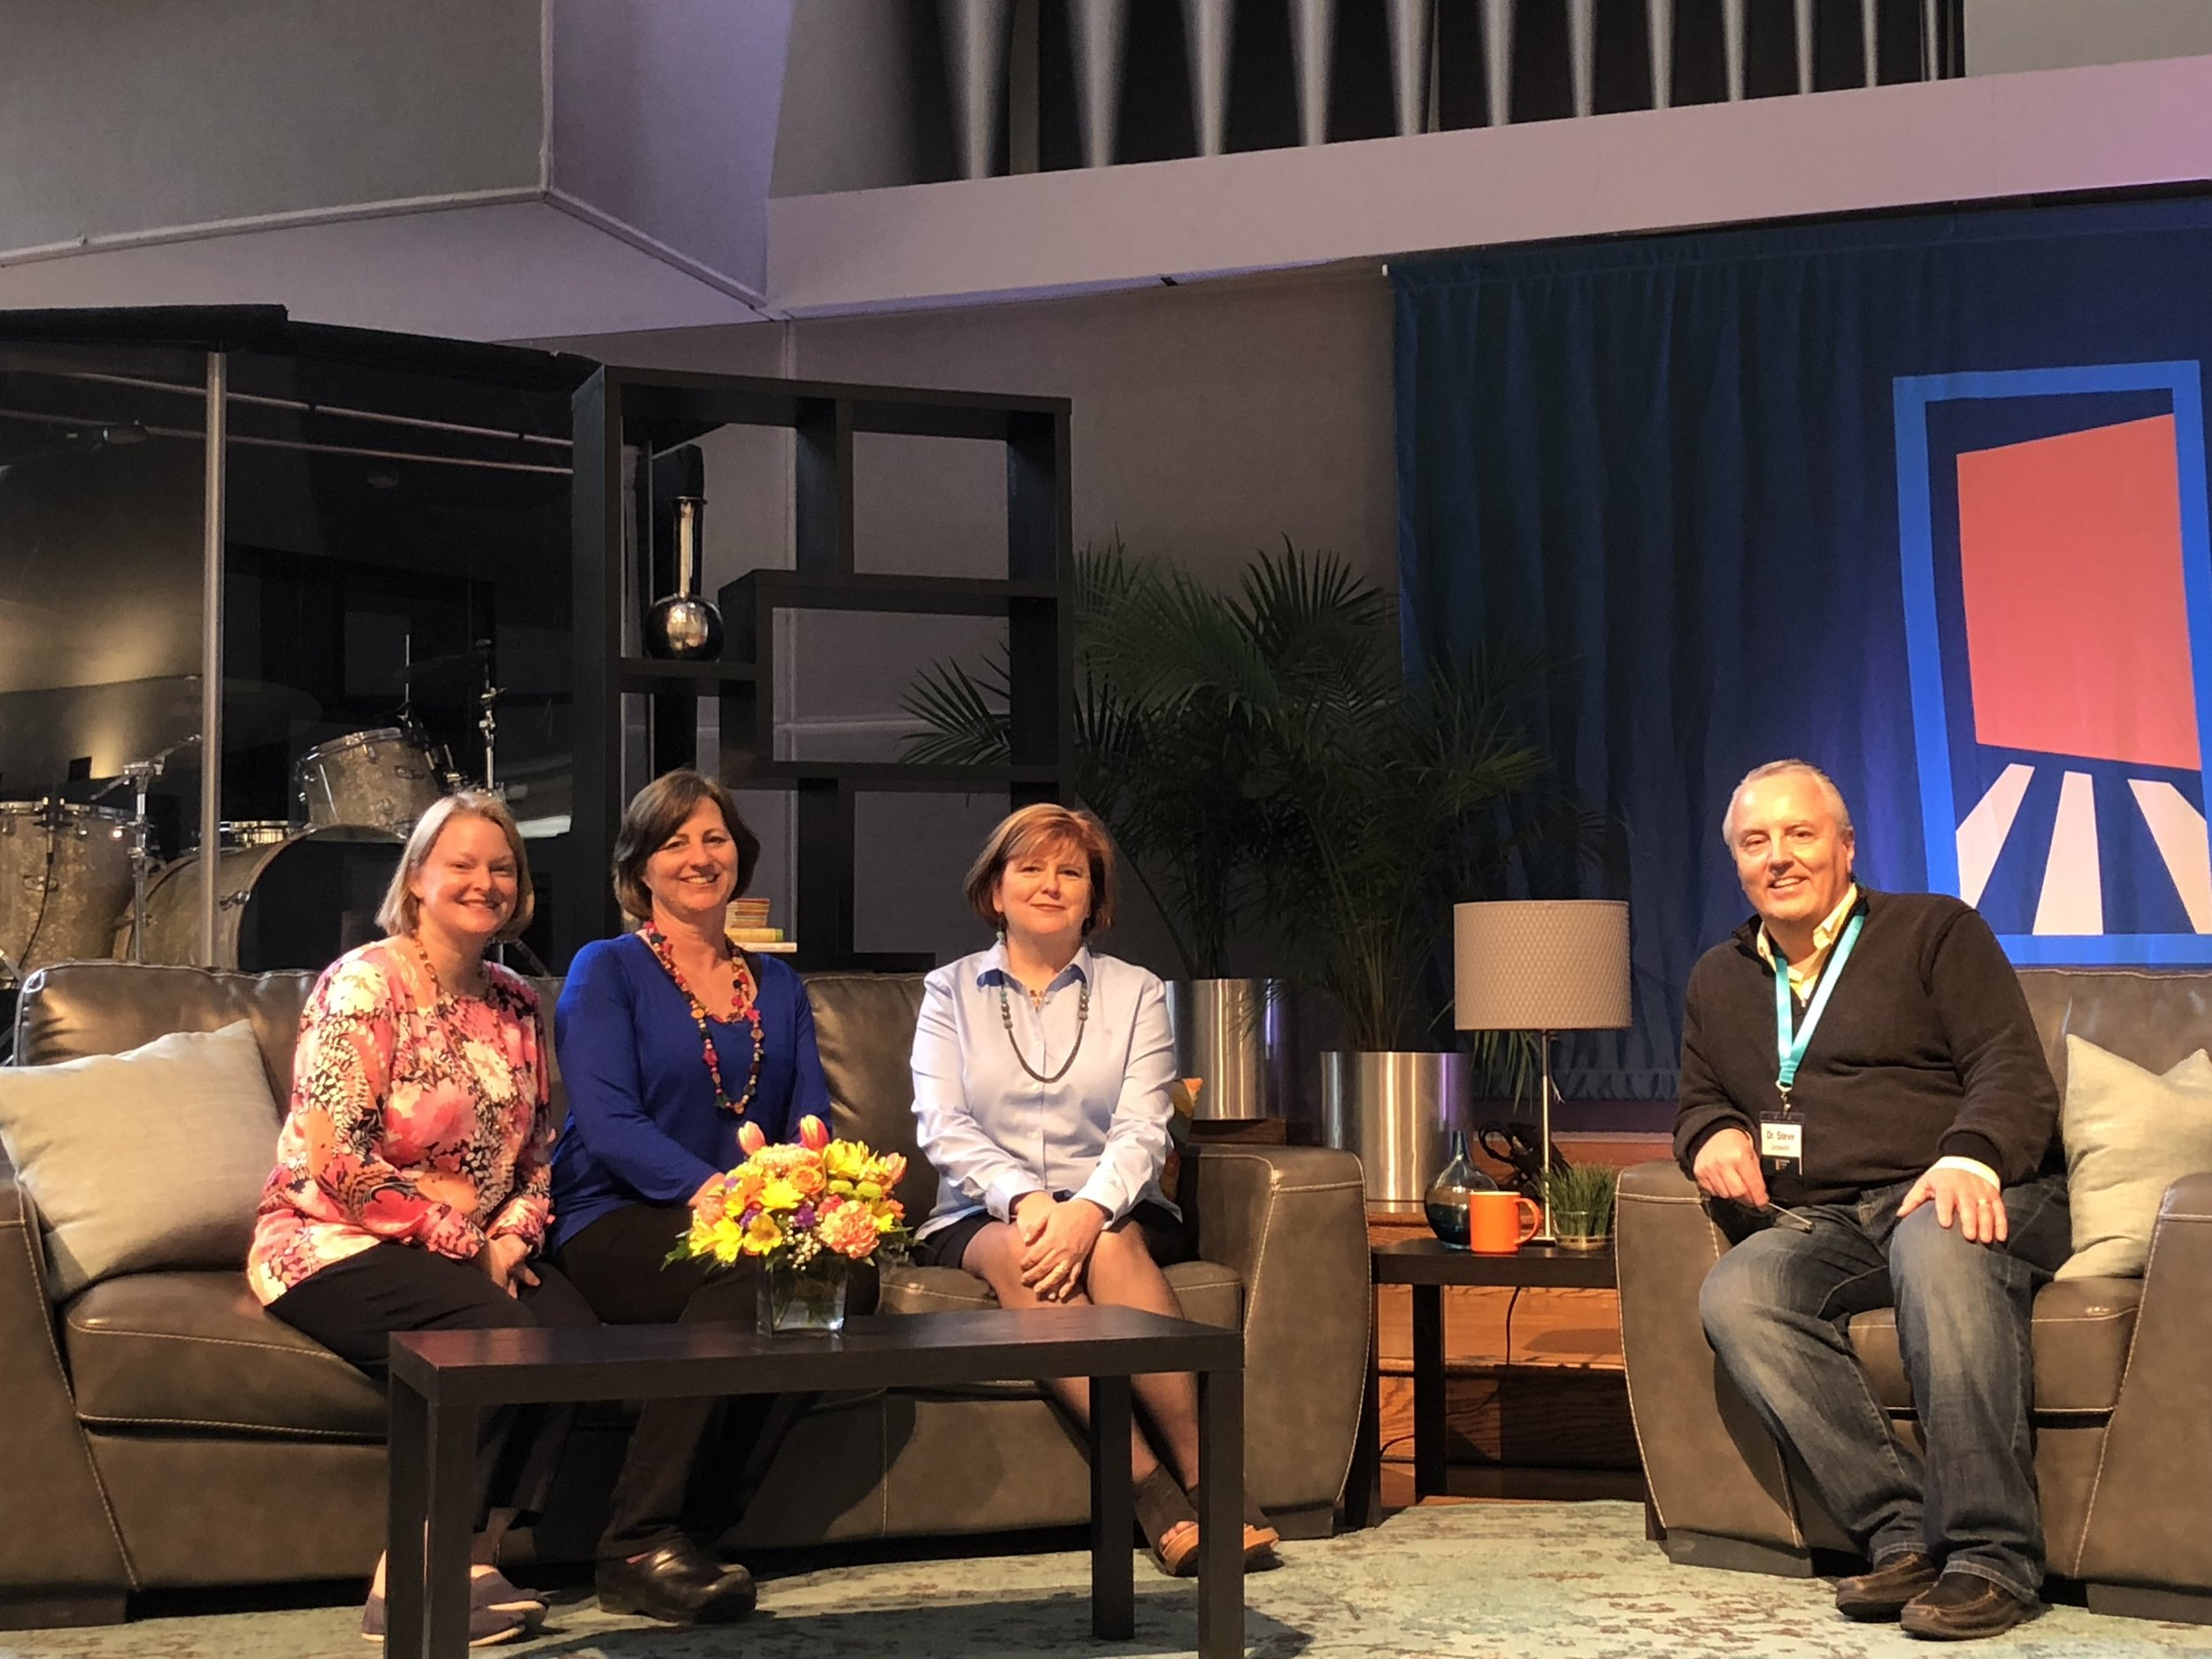 Sandra Peoples, Beth Golik, Barb Dittrich and Dr. Steve Grcevich. Missing: Catherine Boyle